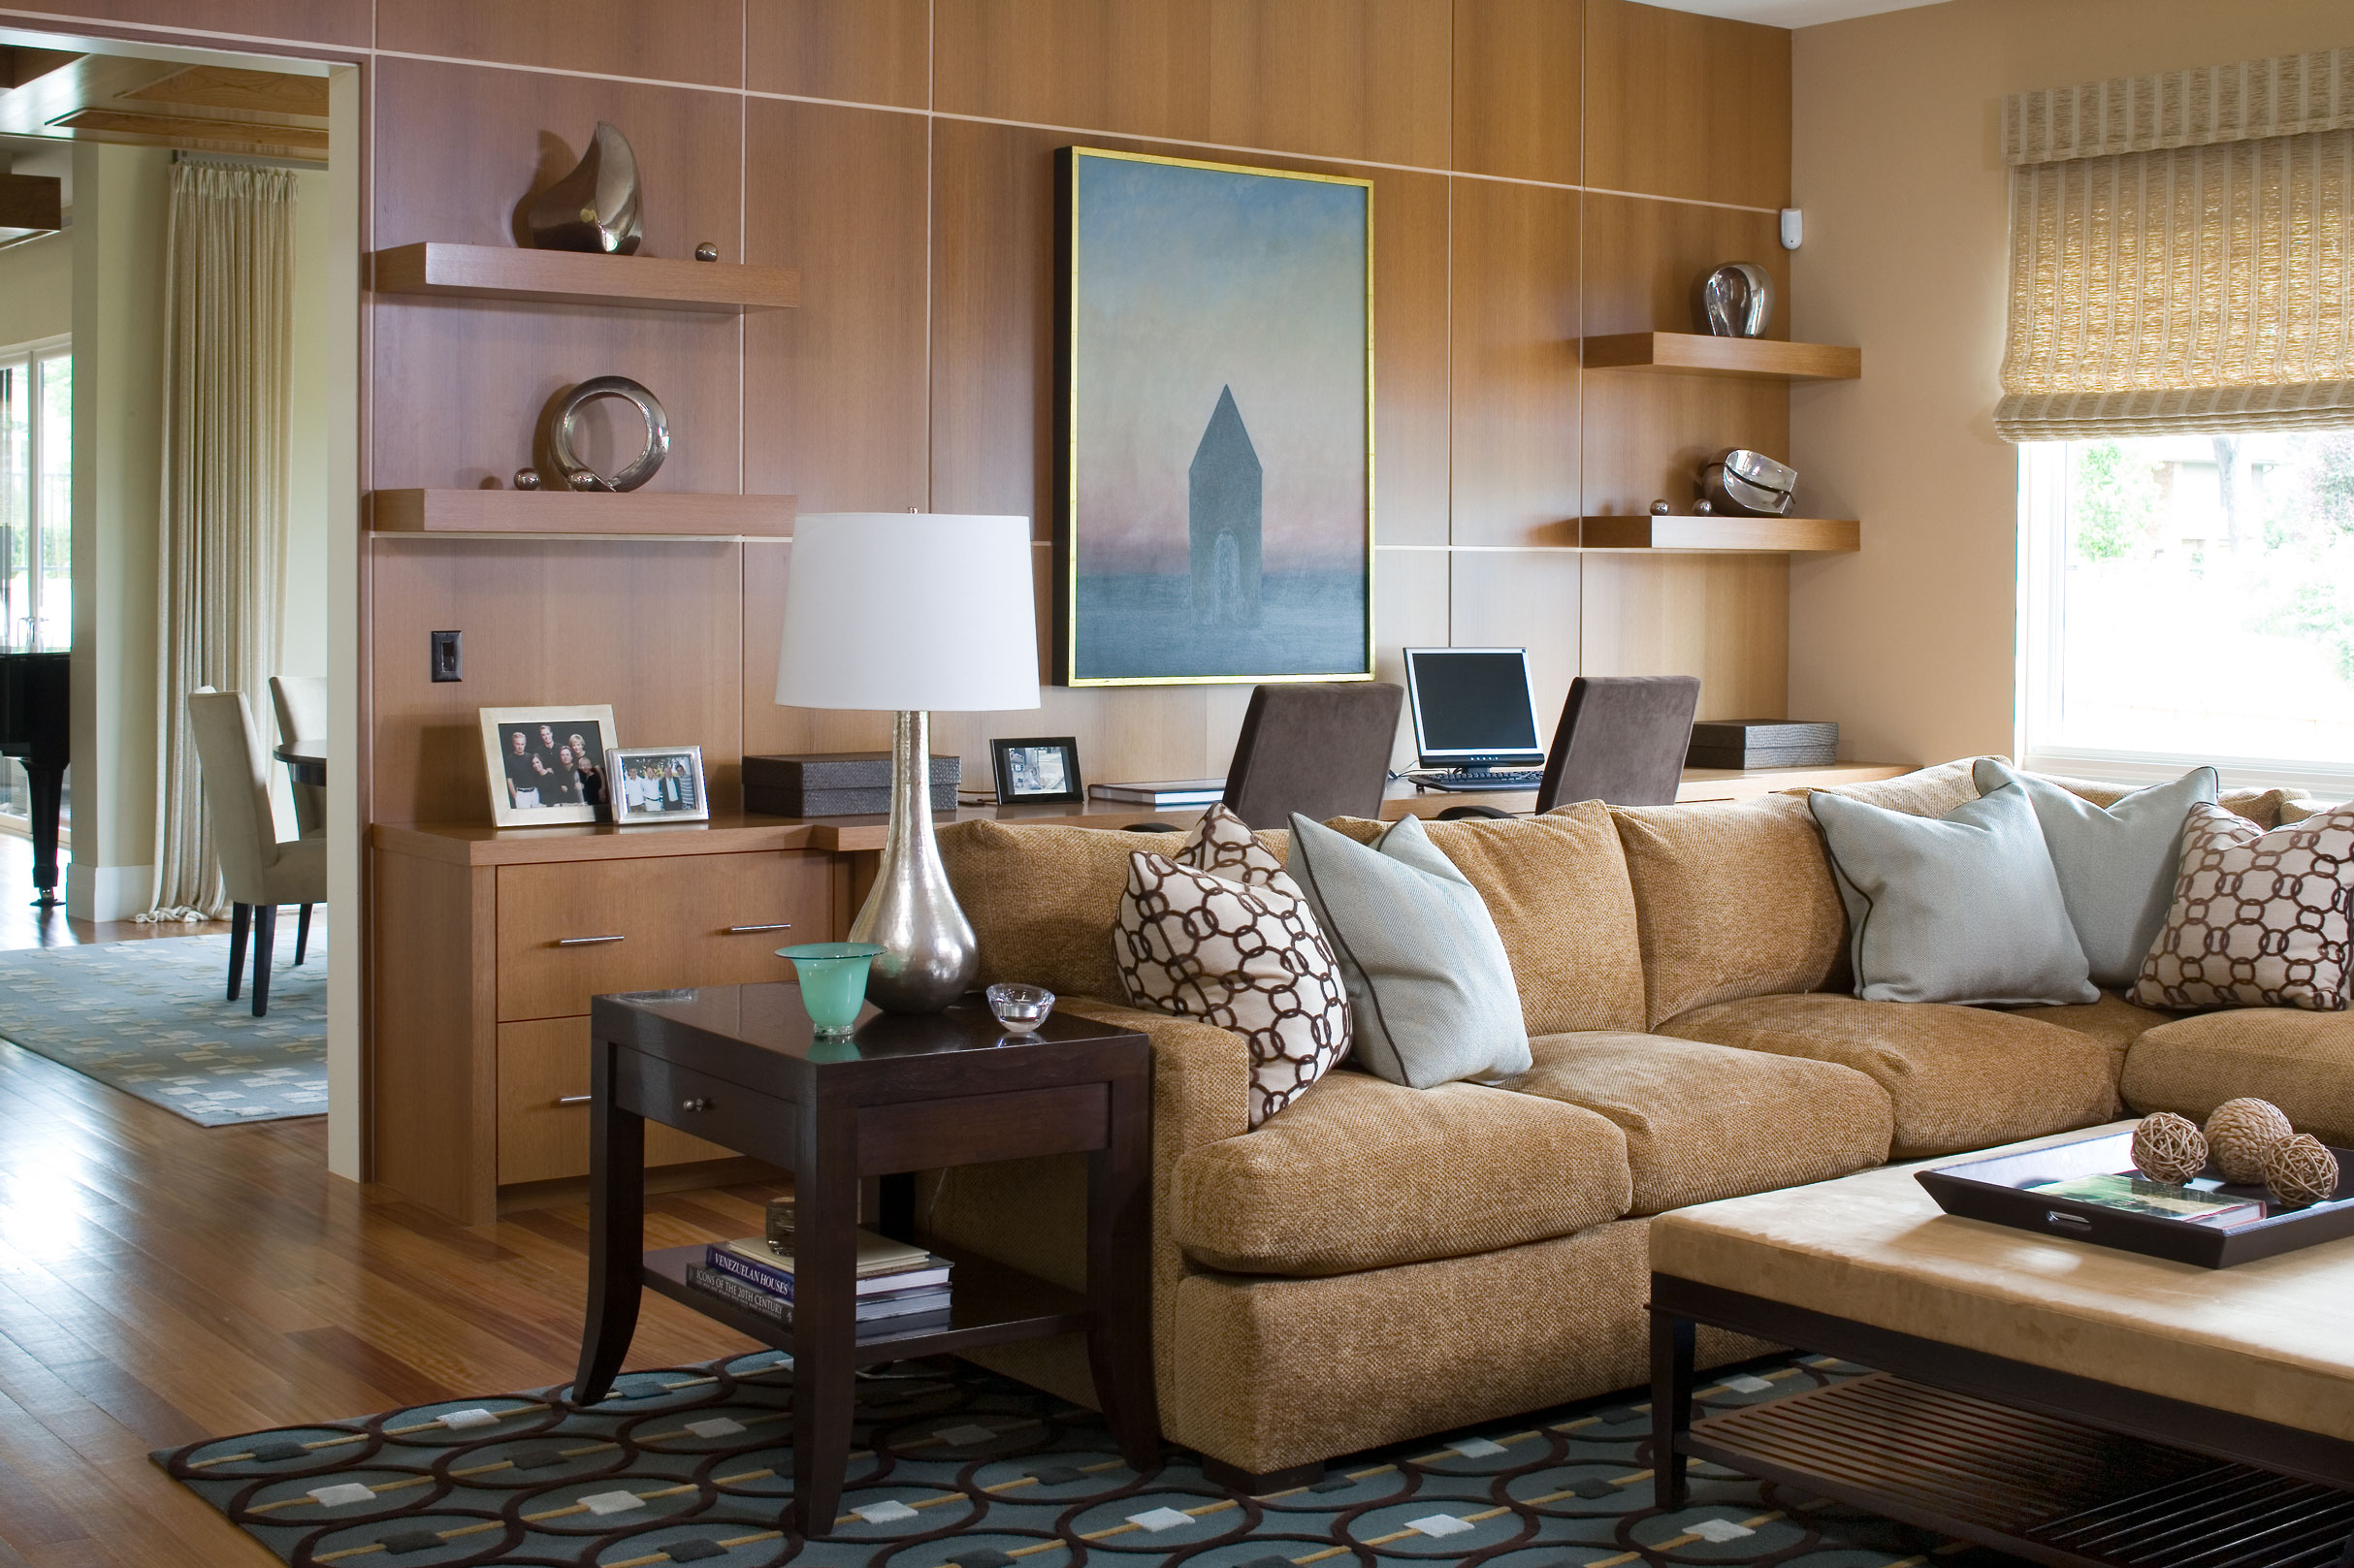 a showroom photos slant wall workplace designer with corporate can project offices environment interior to the lab and create details physical commercial elements flooring demonstrate interiors how modular working their denver right projects design